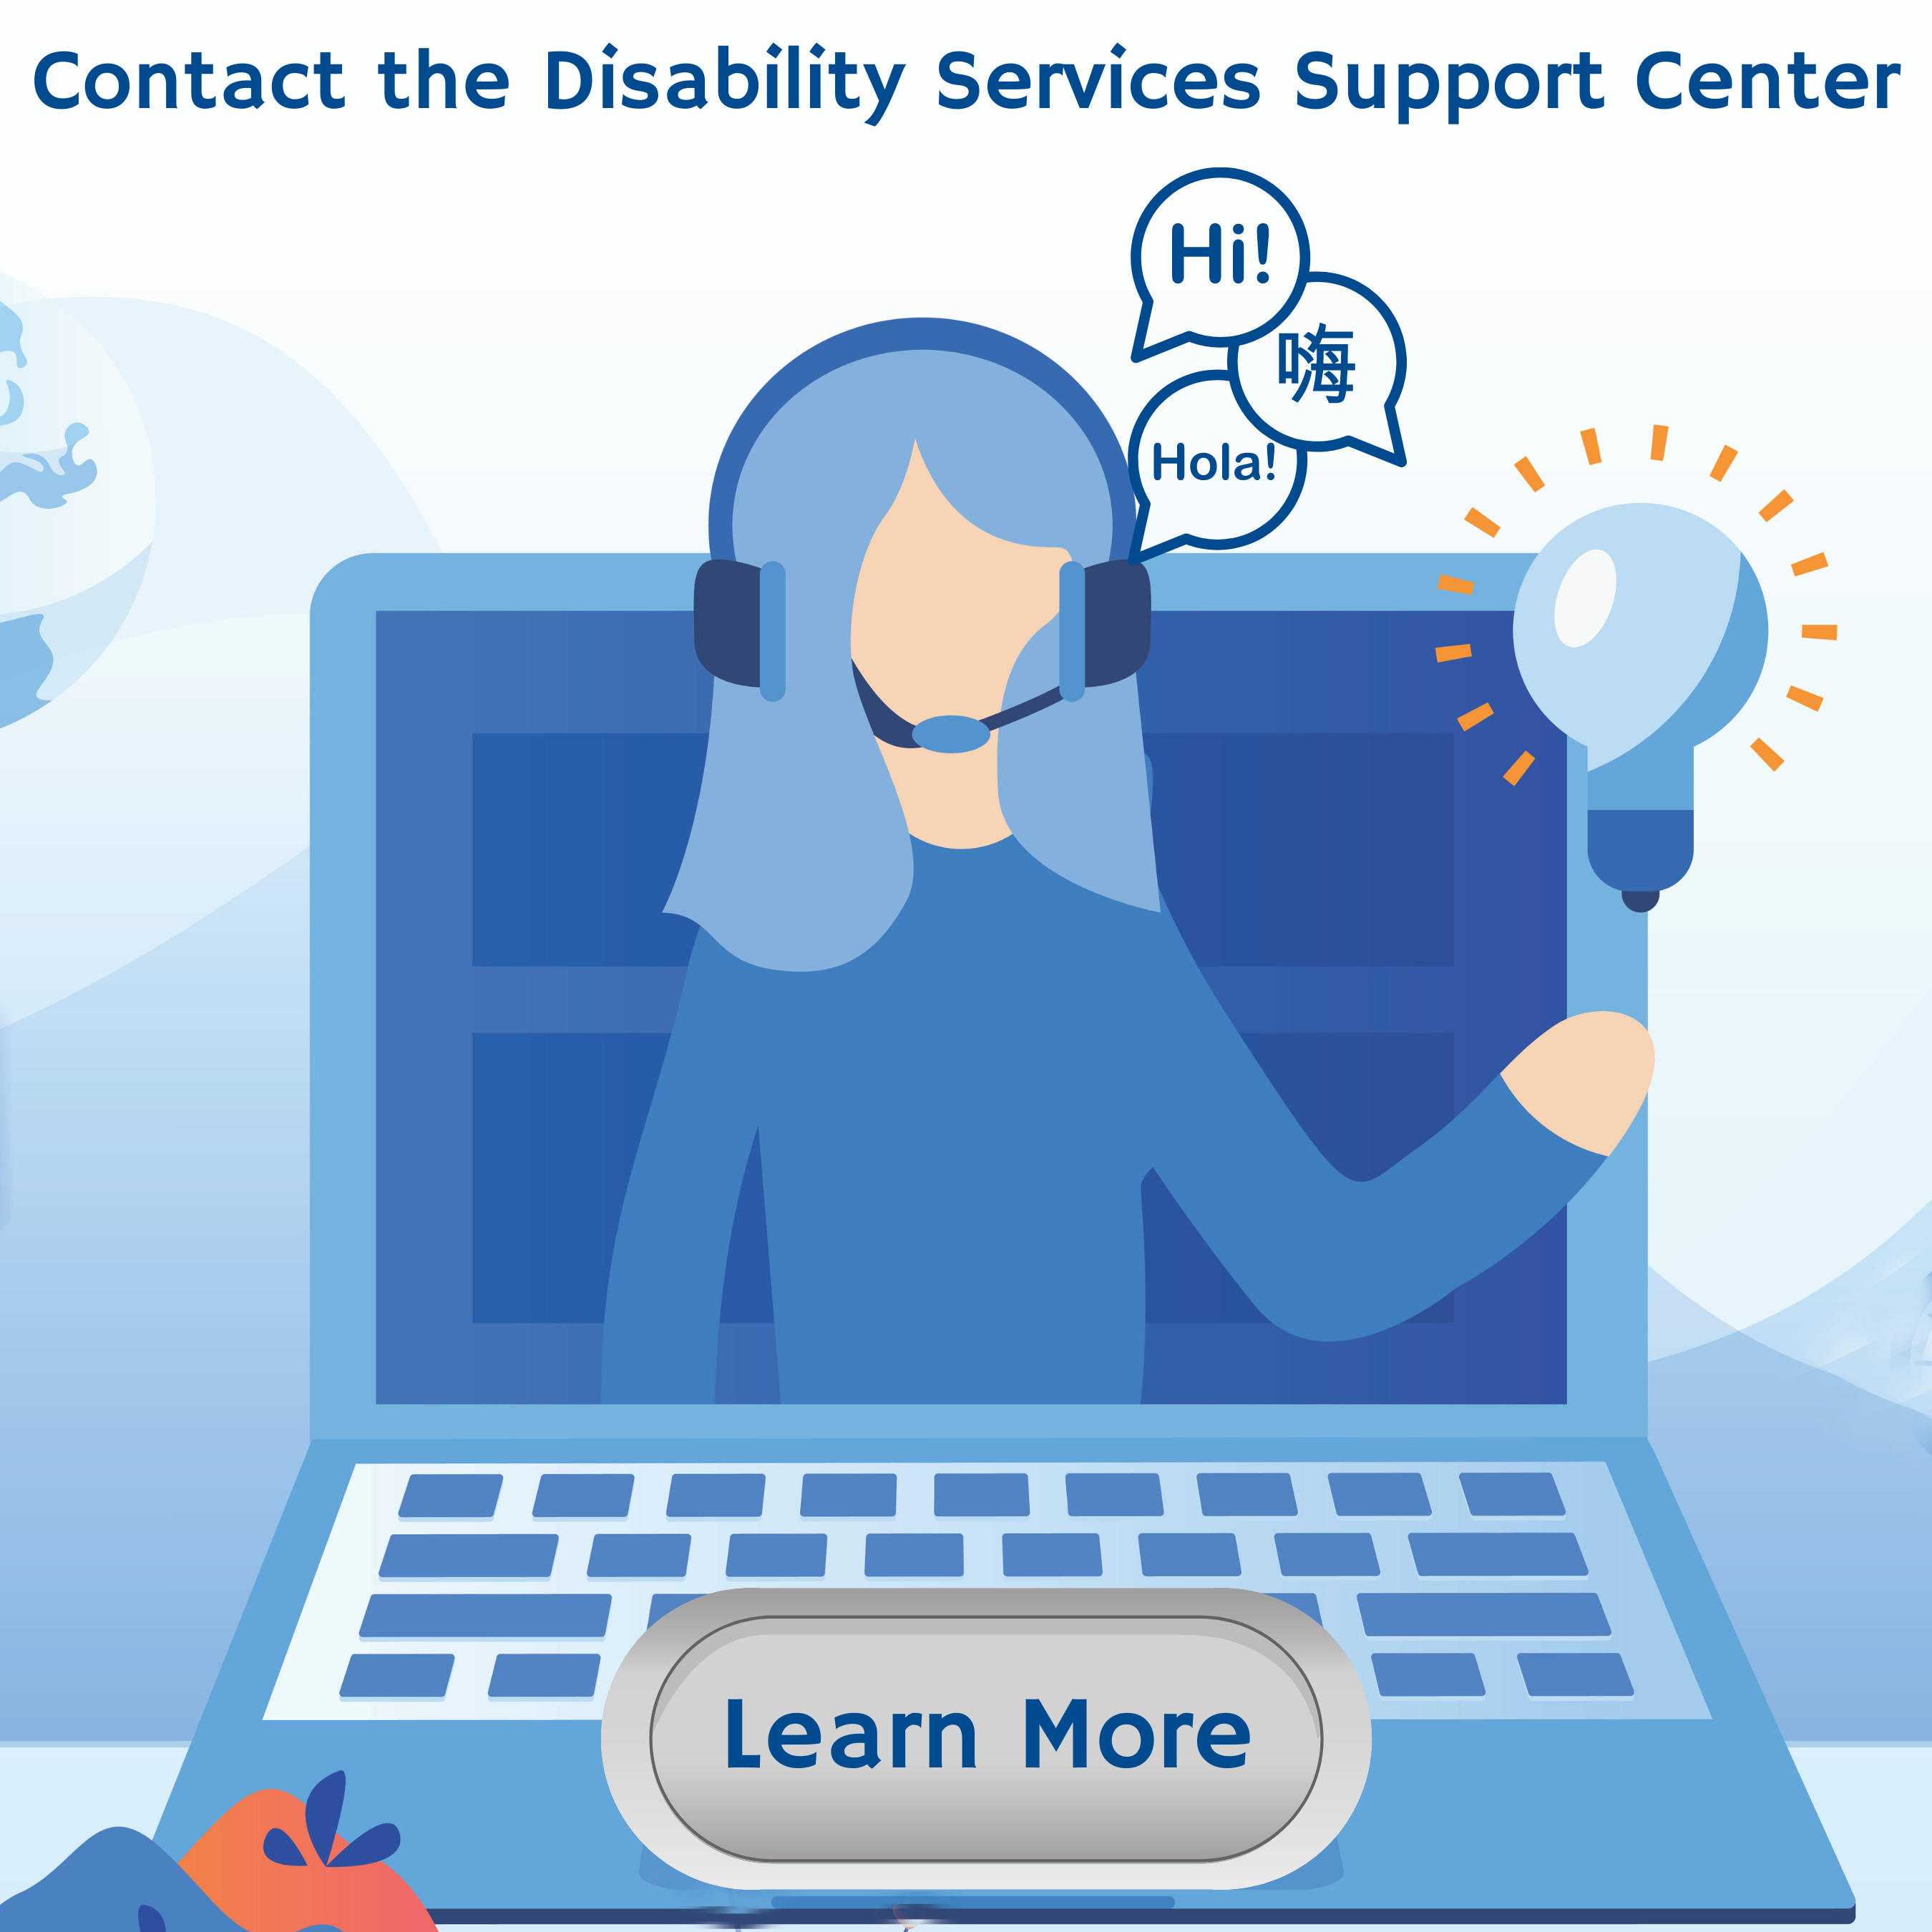 Contact the Disability Services Support Center. A person with long hair holding a light bulb. Three speech bubbles saying hi in English, Spanish, and Chinese. Learn more.